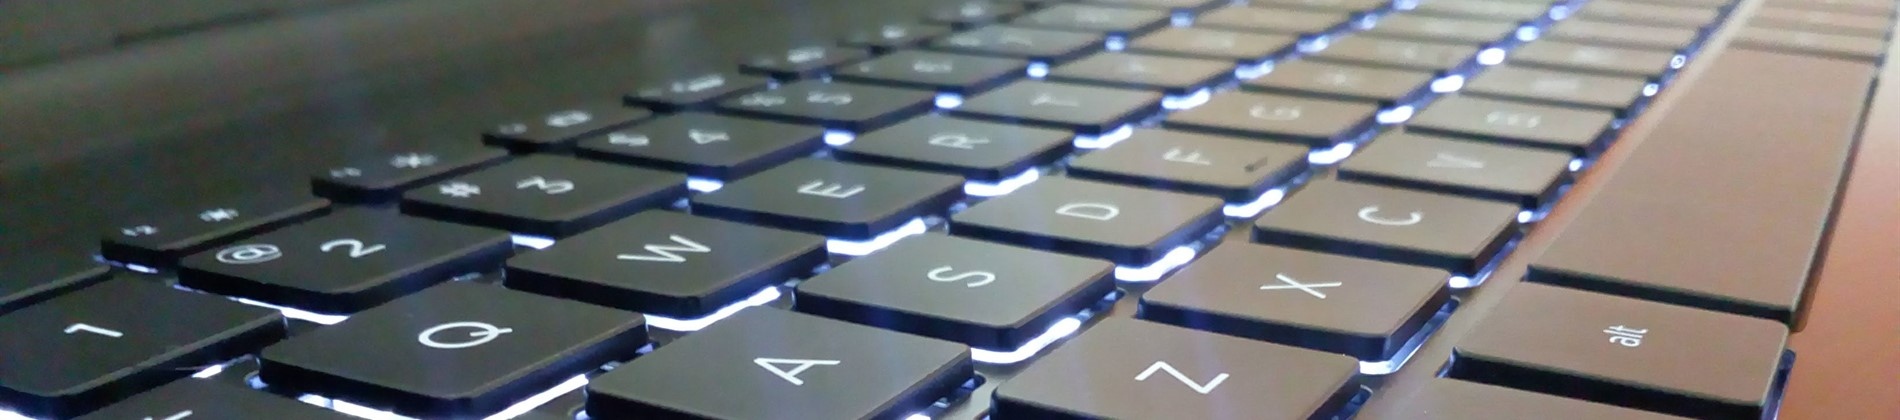 Backlit Keyboard